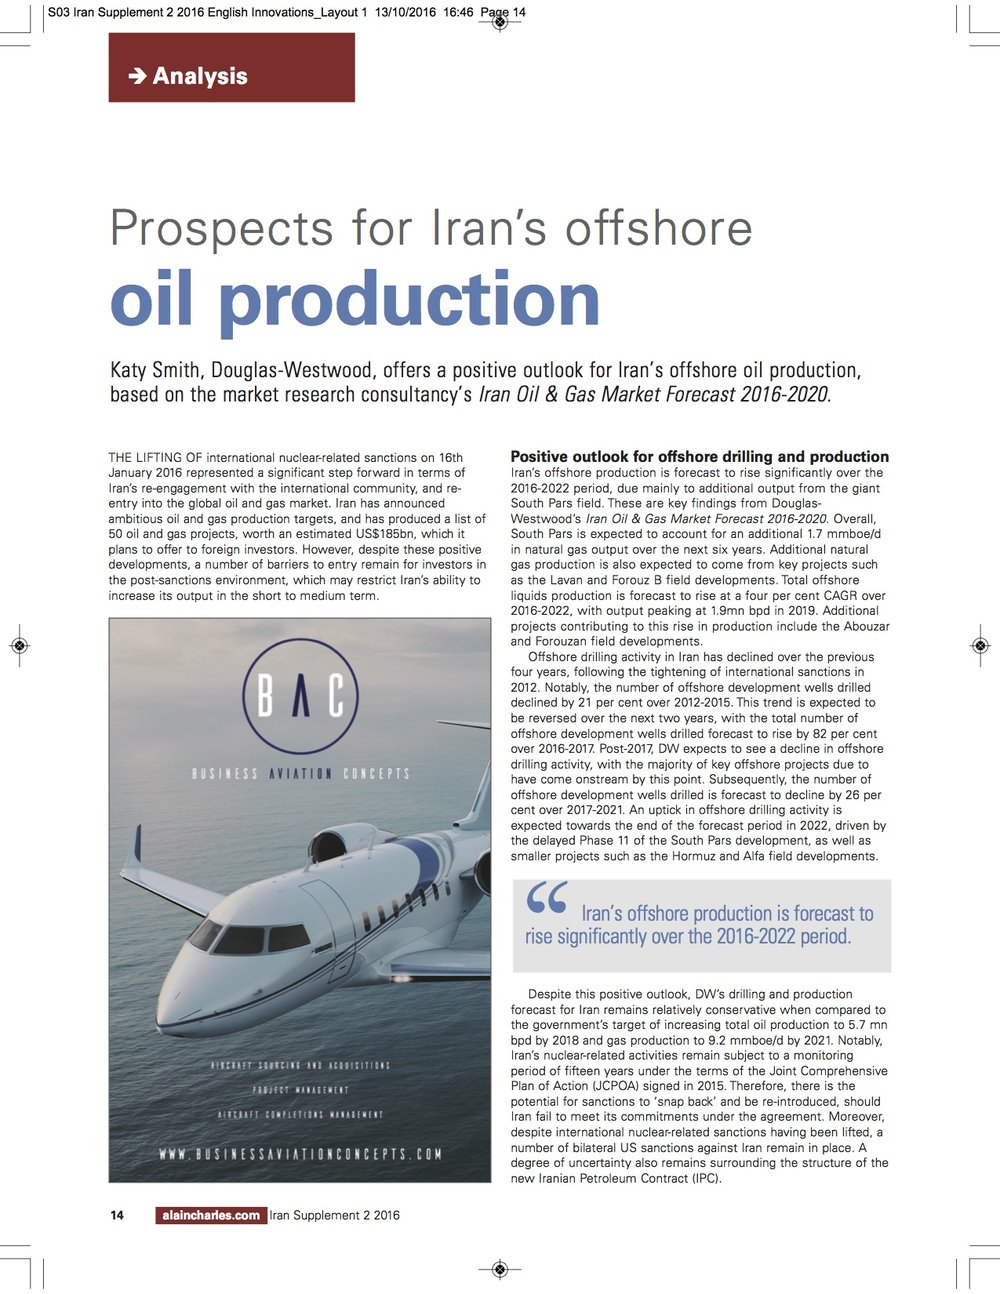 Iran Supplement 2 2016 pg 14.jpg